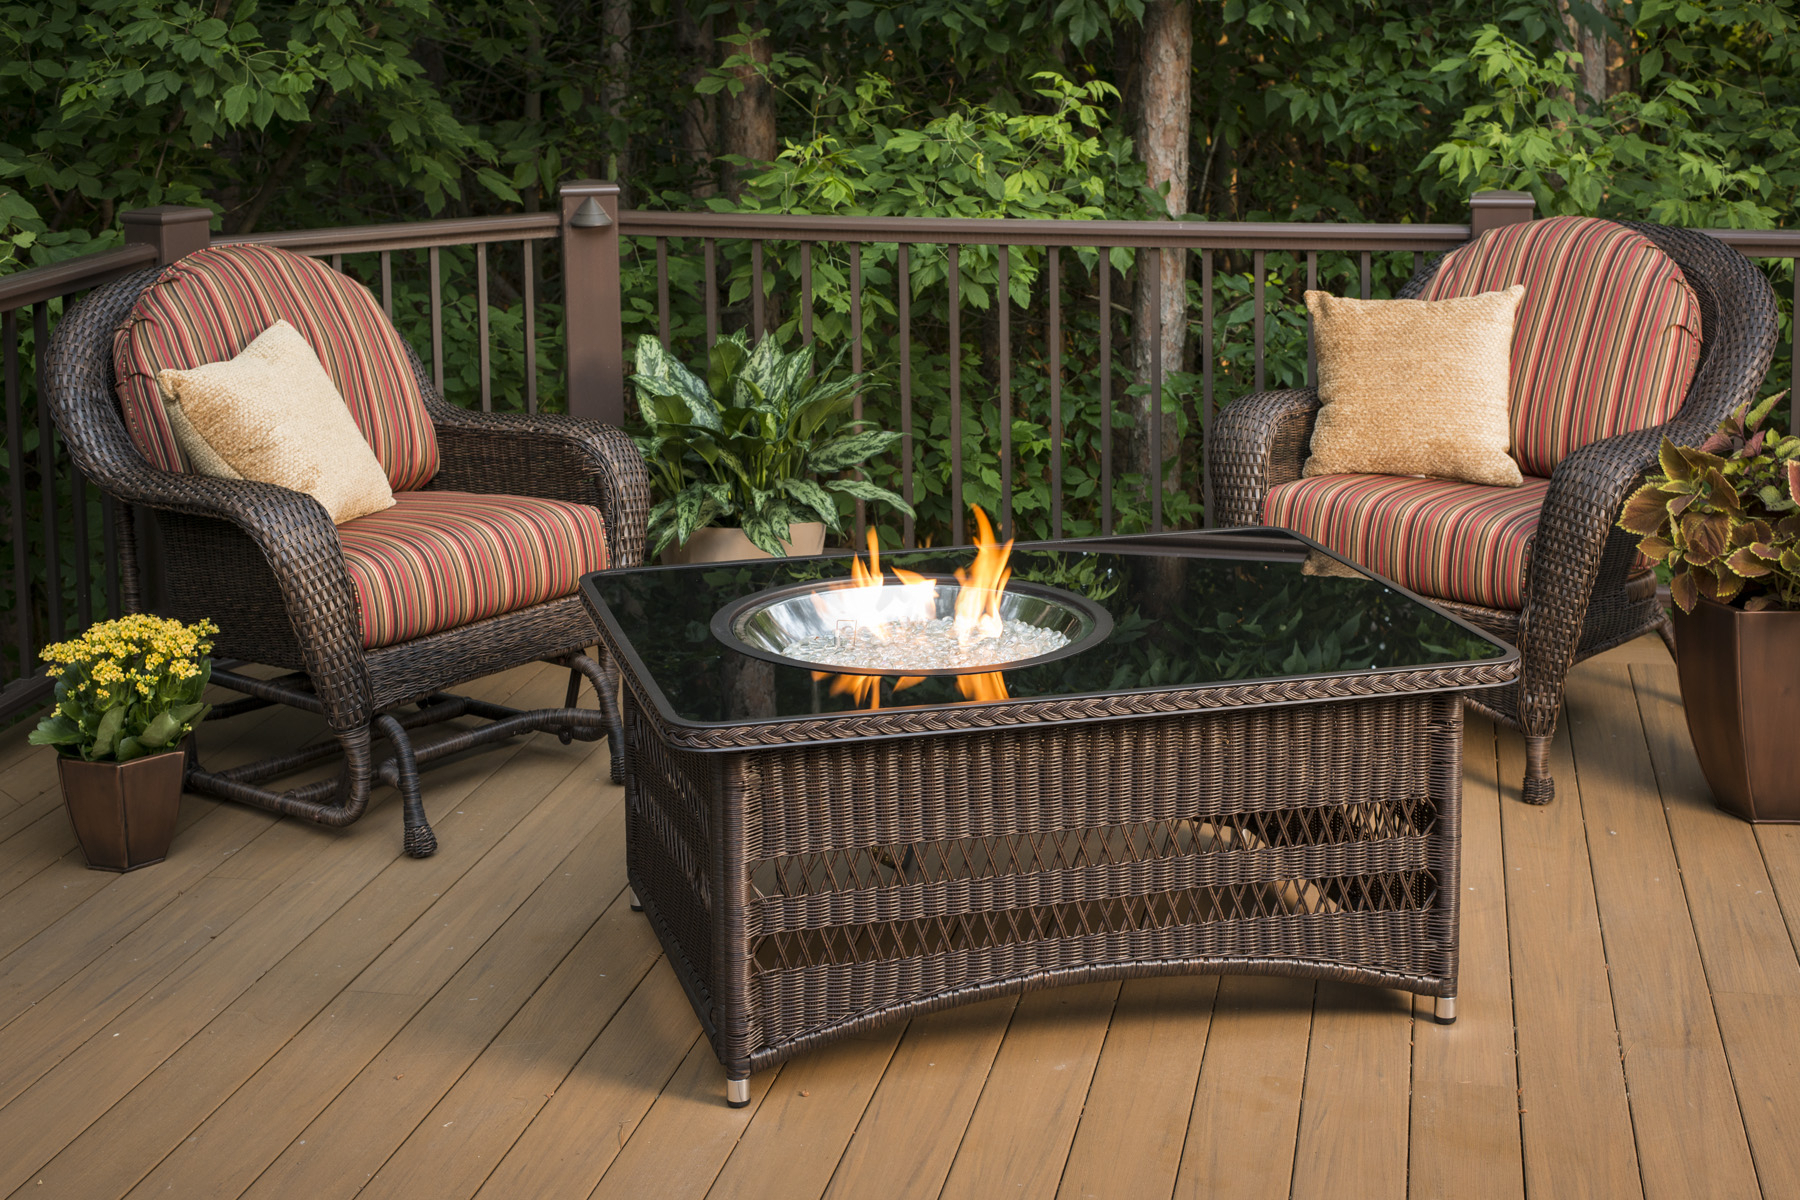 Propane Fire Pit On Wooden Deck Decks Ideas with proportions 1800 X 1200